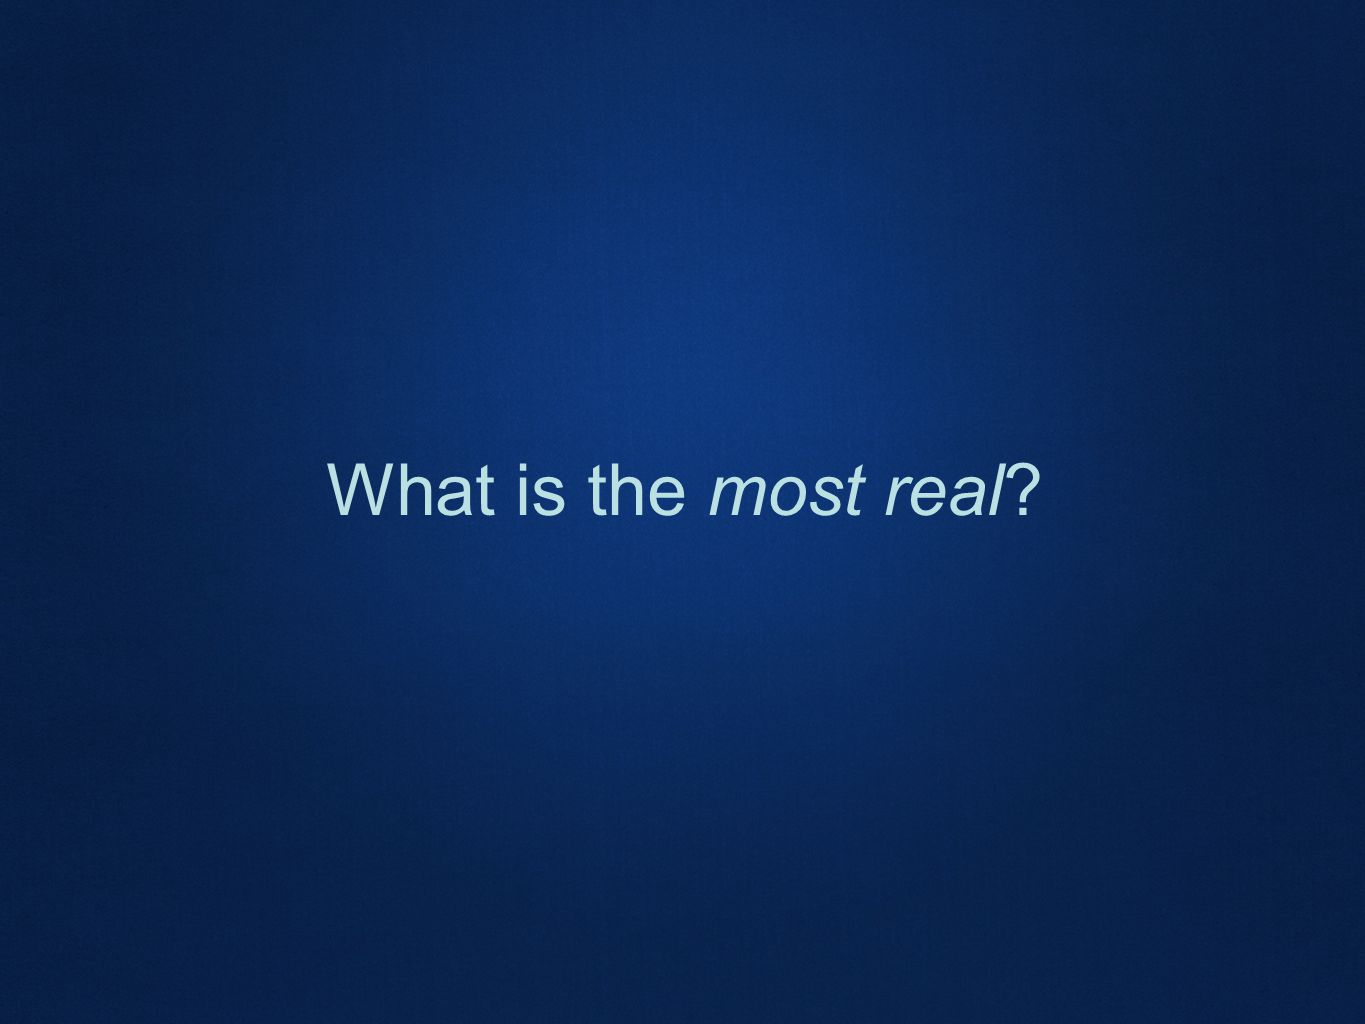 What is the most real